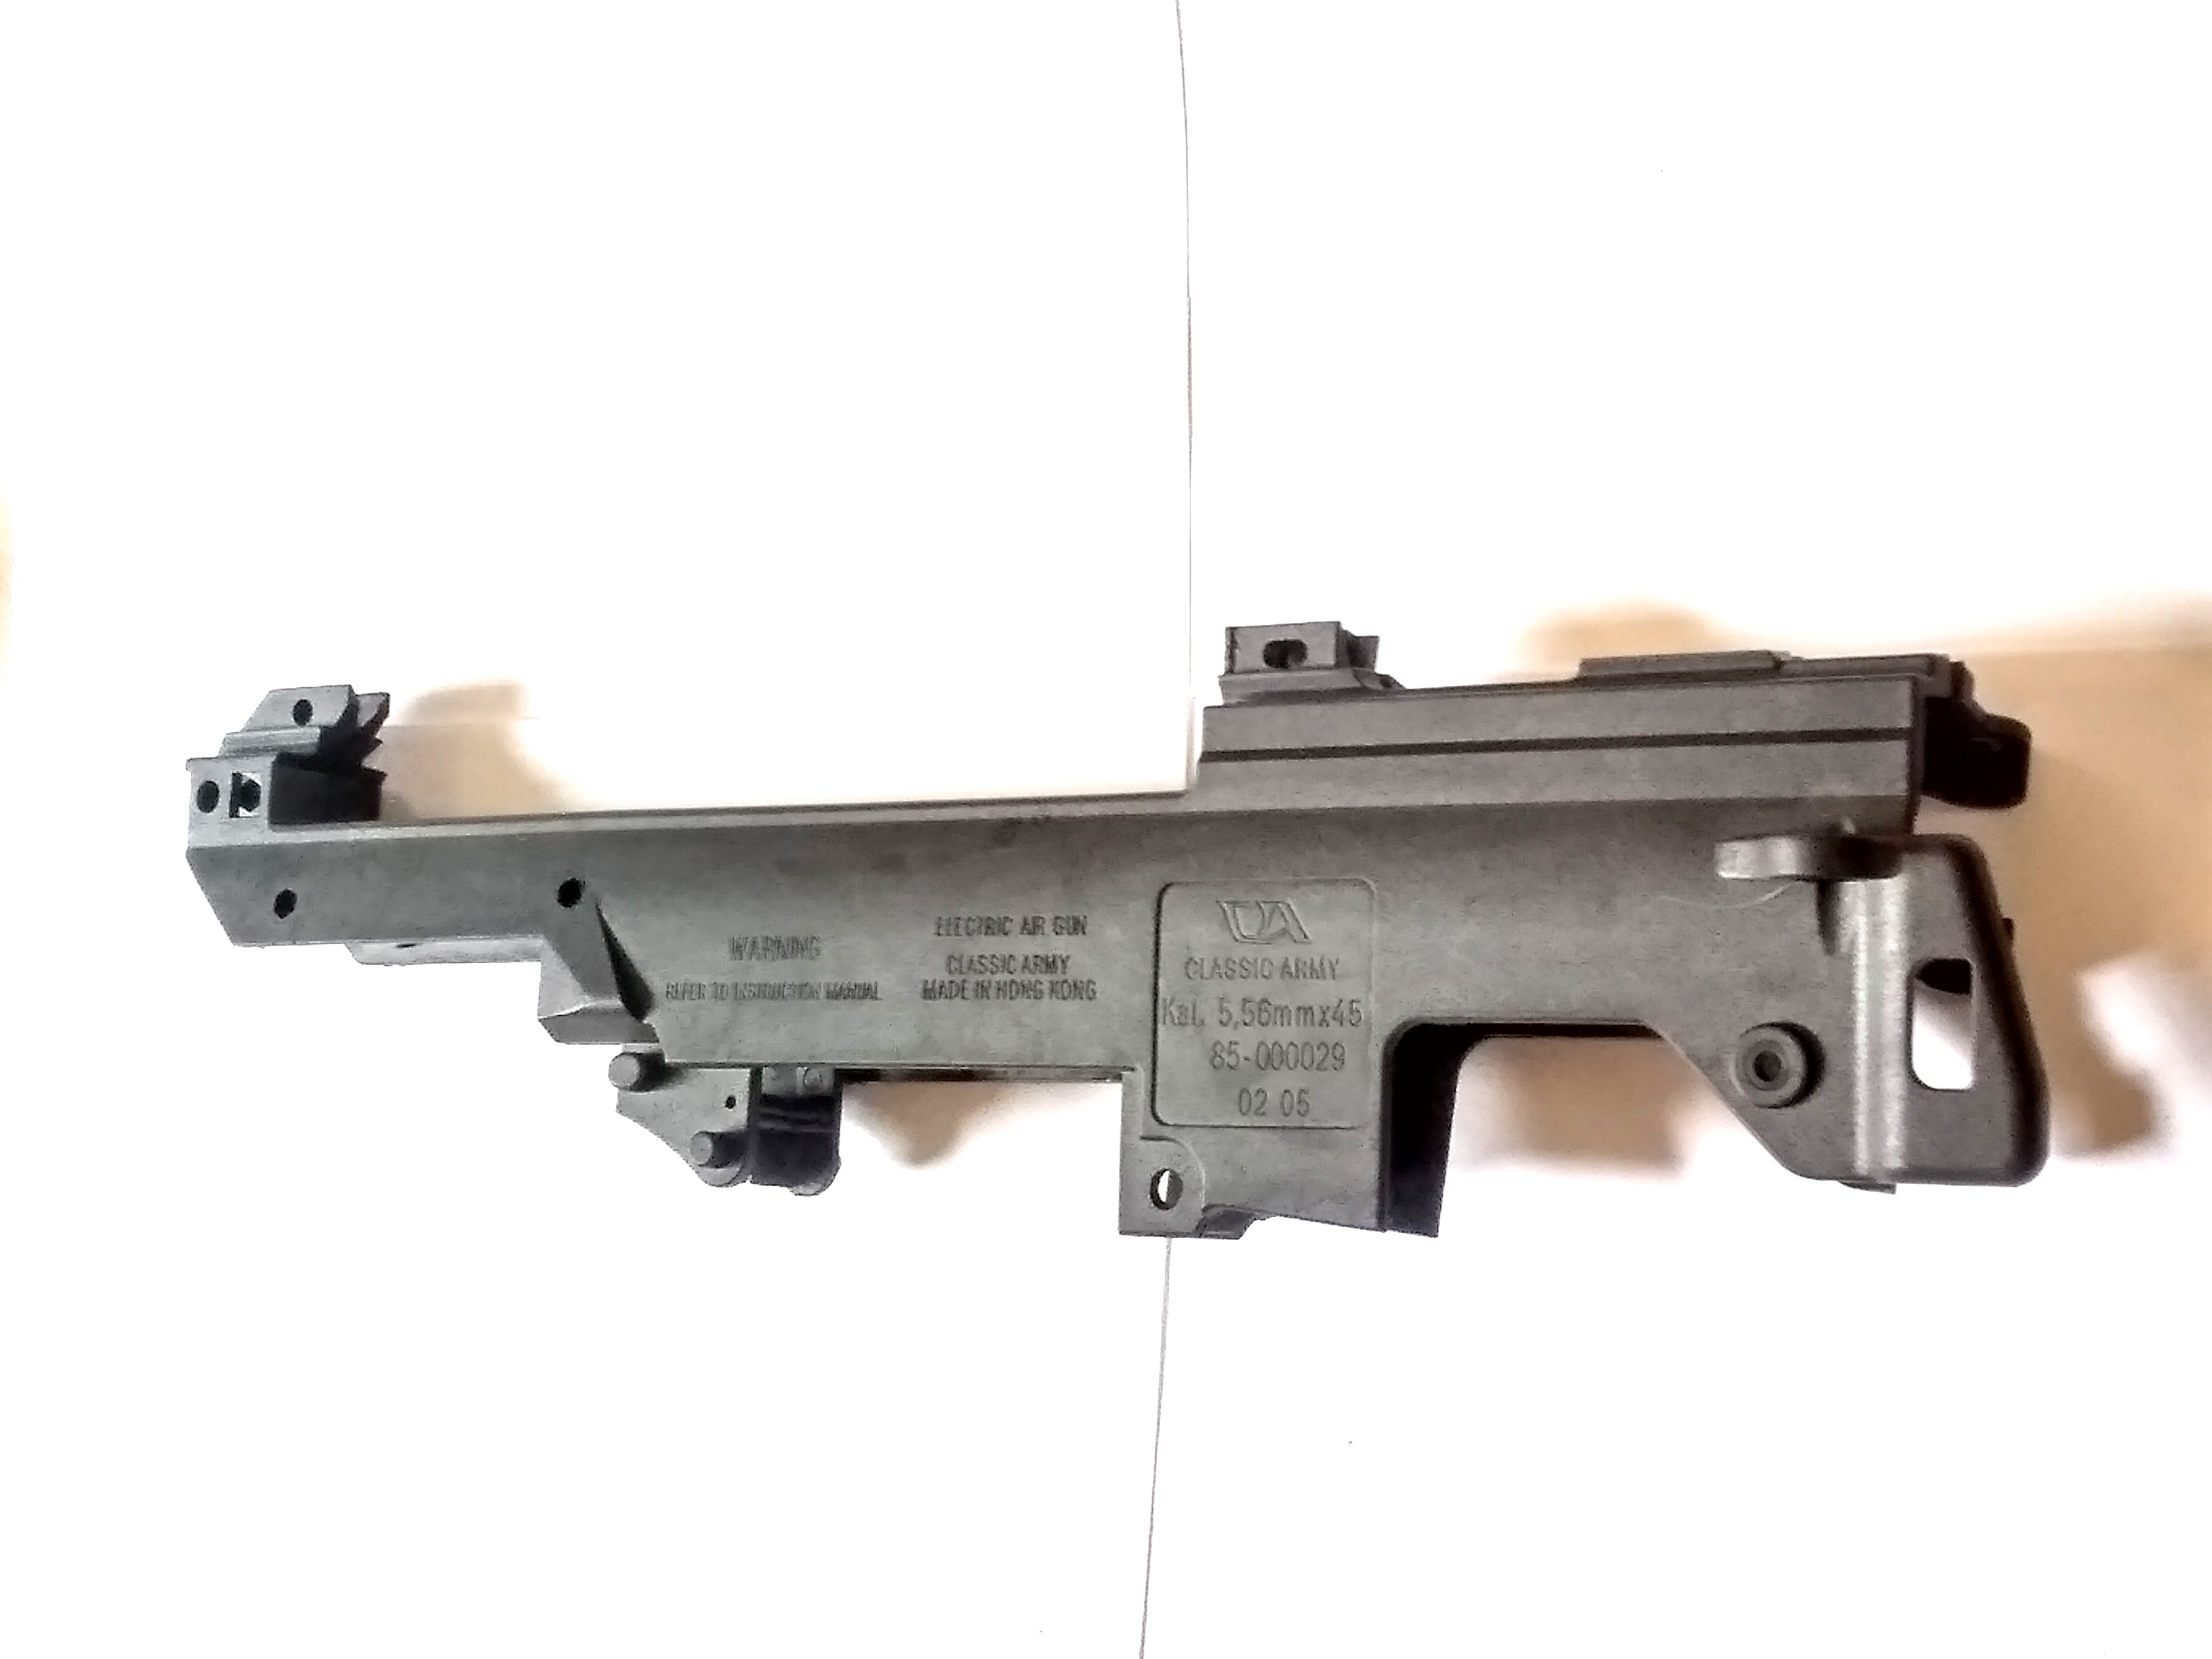 G36 CLASSIC ARMY UPPER RECEIVER